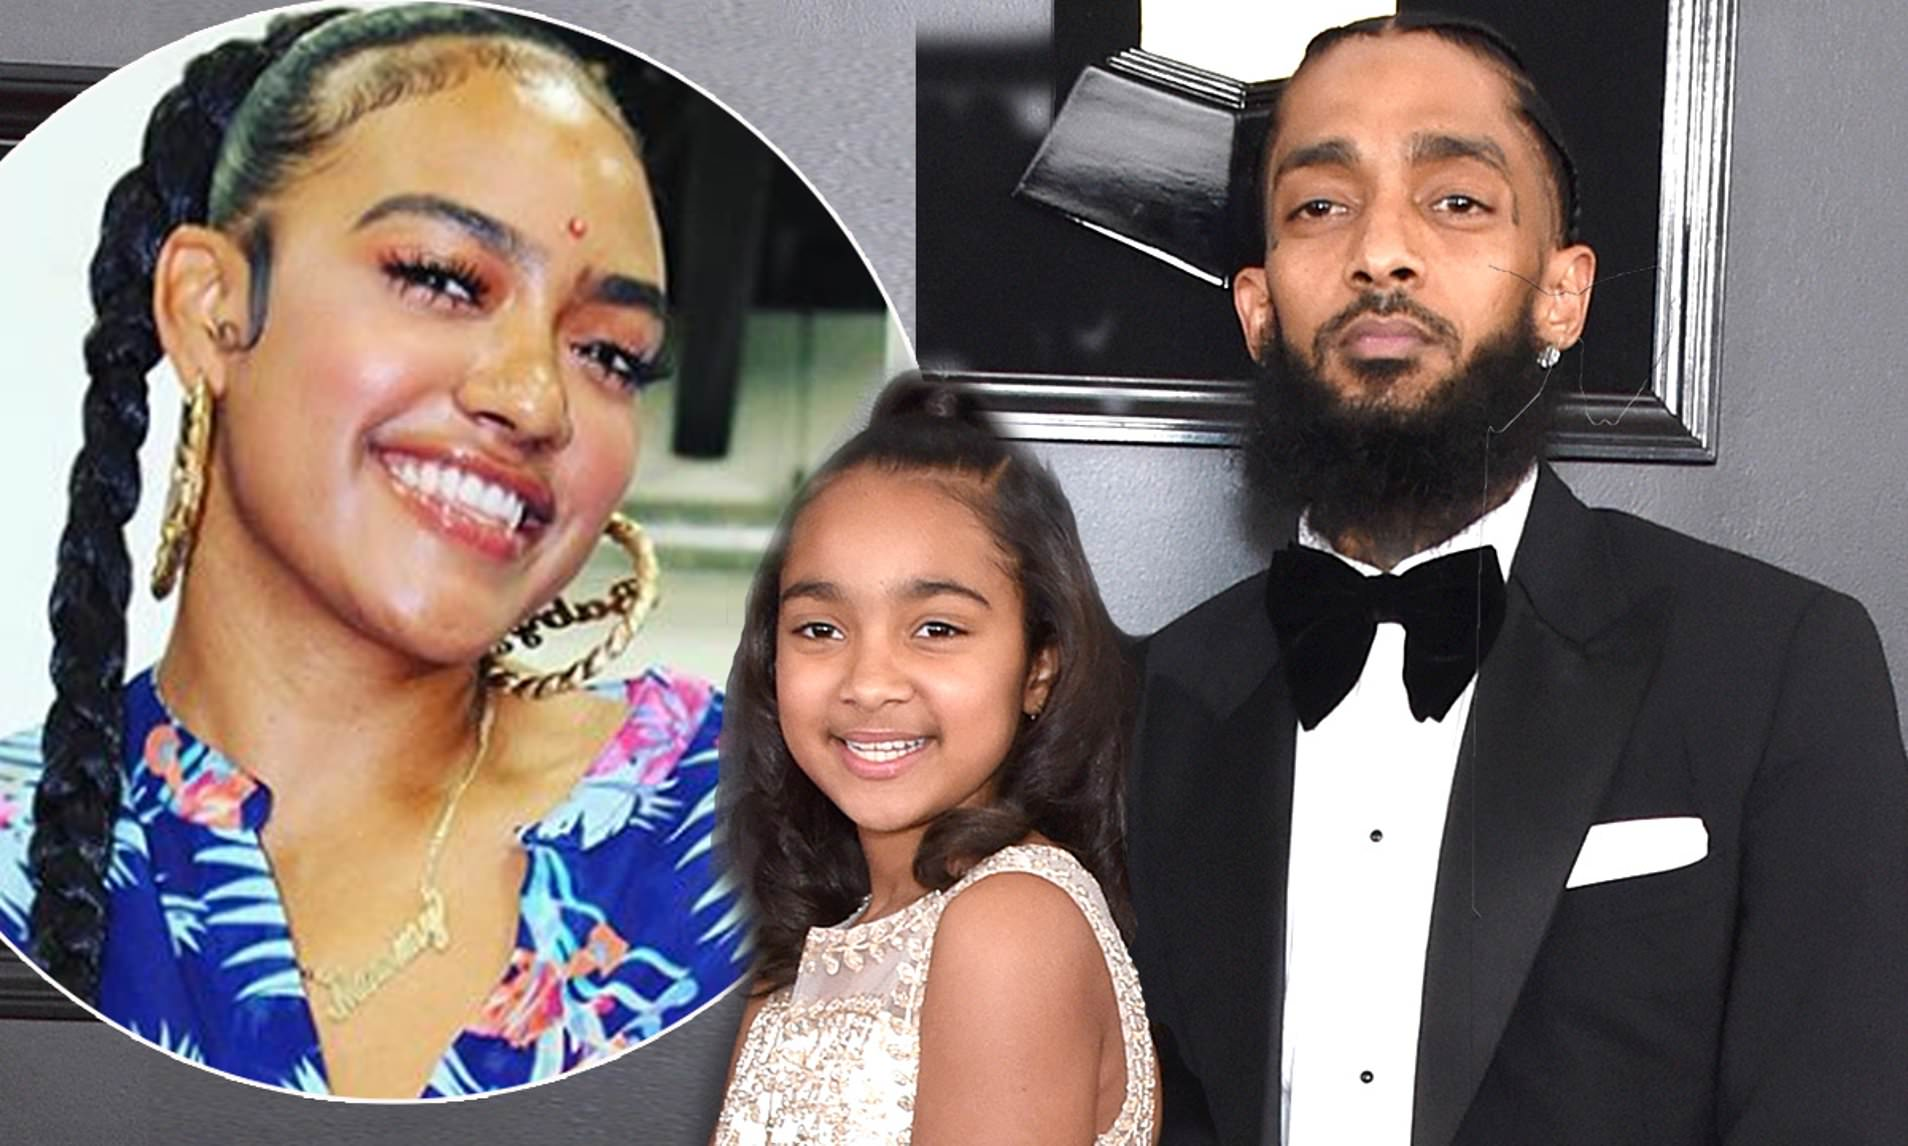 Mother of Nipseys Daughter Claims His Sister Kidnapped Emani